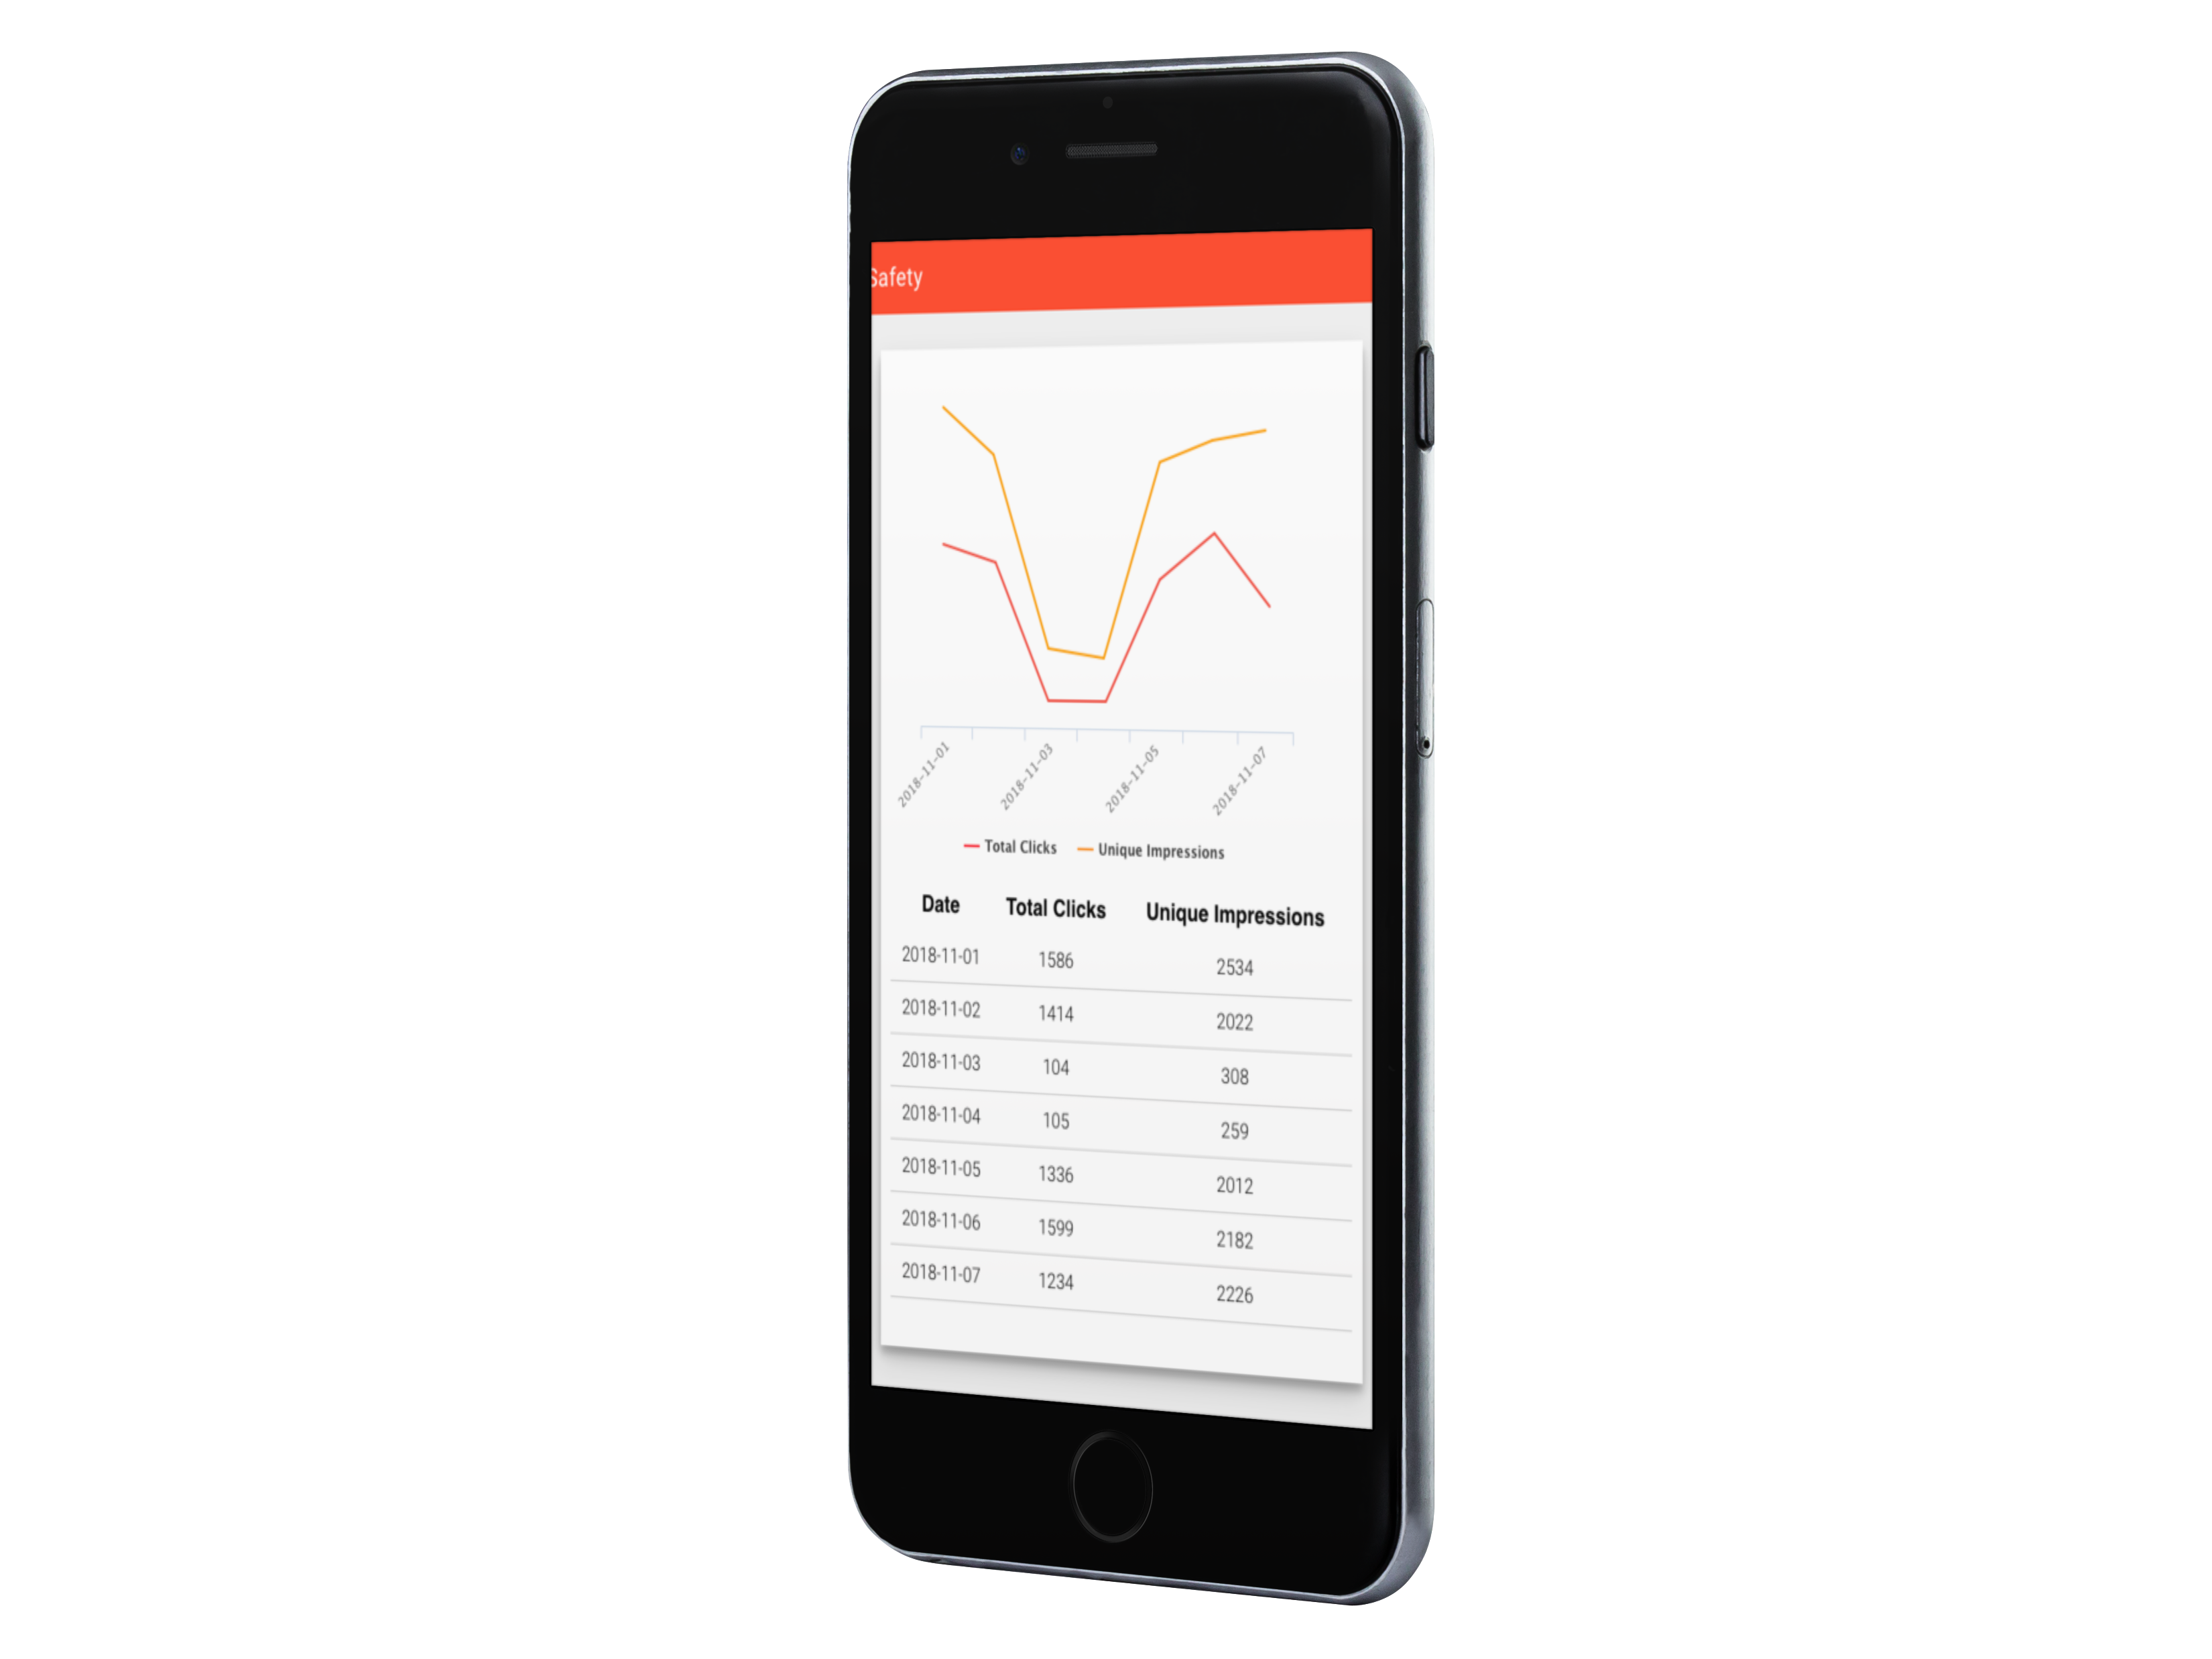 View analytics on the web or phone